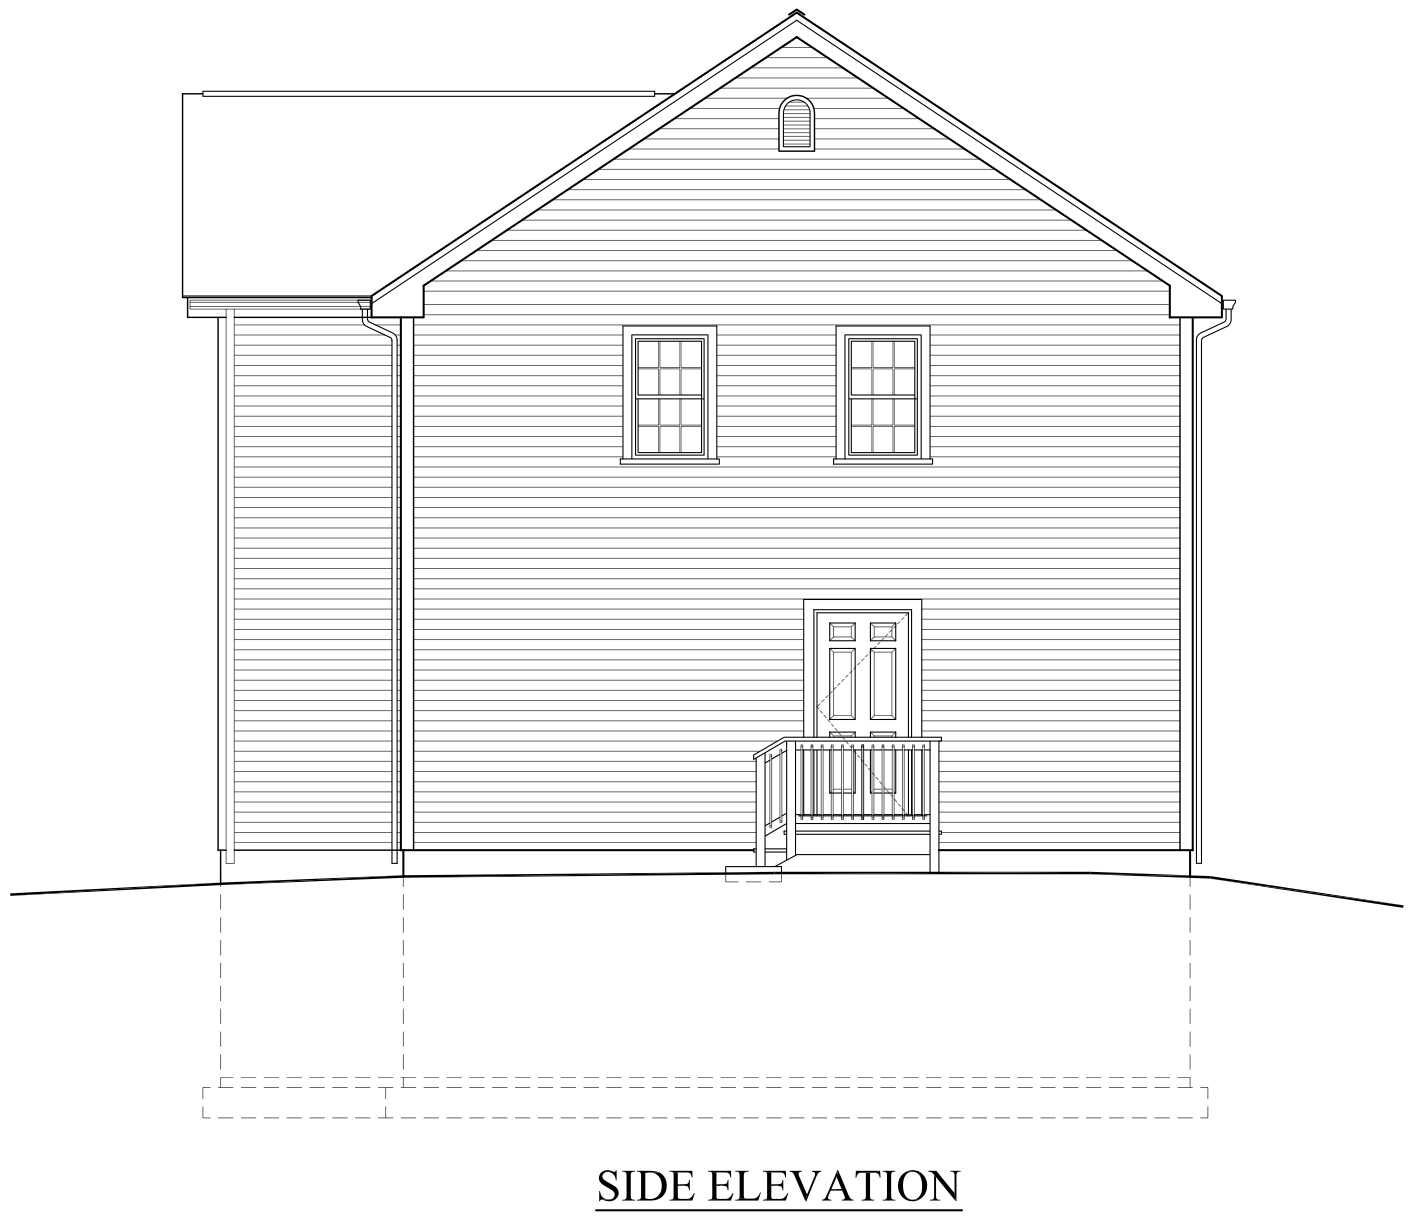 Front view elevation of house plans for Side view house plans